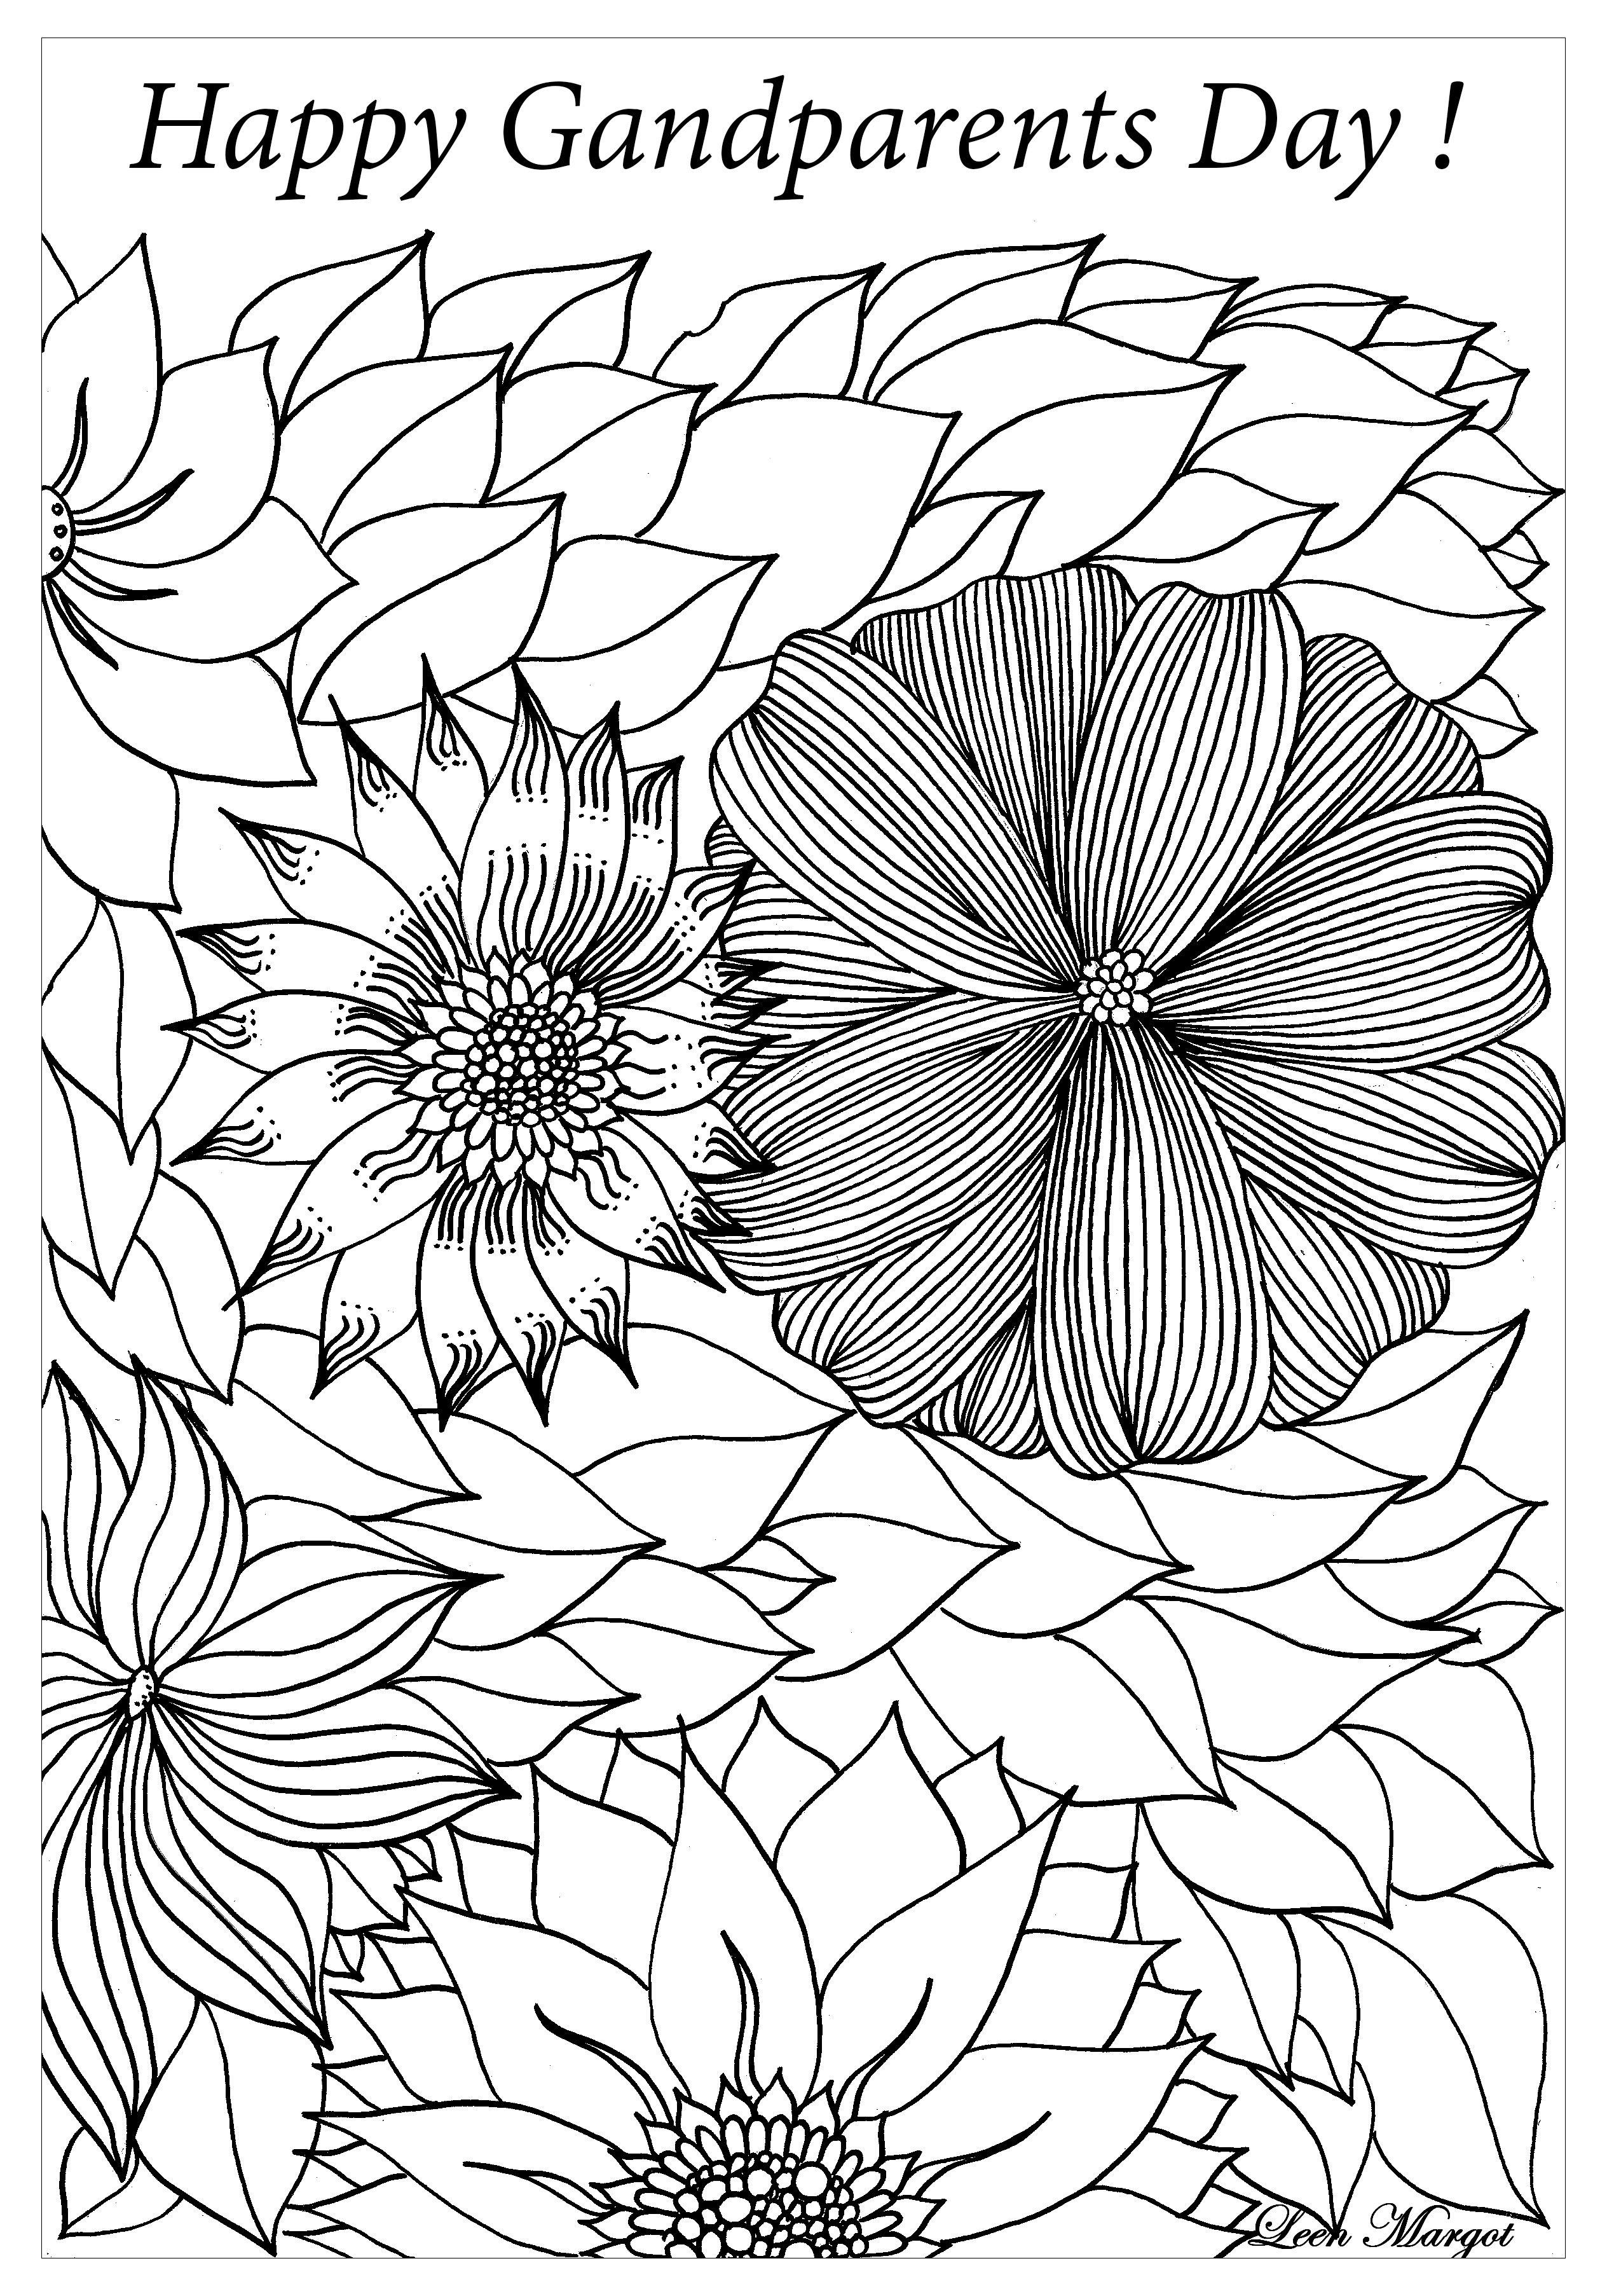 - Free Coloring Page Coloring-complex-happy-grandparents-day-by-leen-margot.  Complex Coloring Page With B… Coloring Pages, Adult Coloring Pages, Free Coloring  Pages